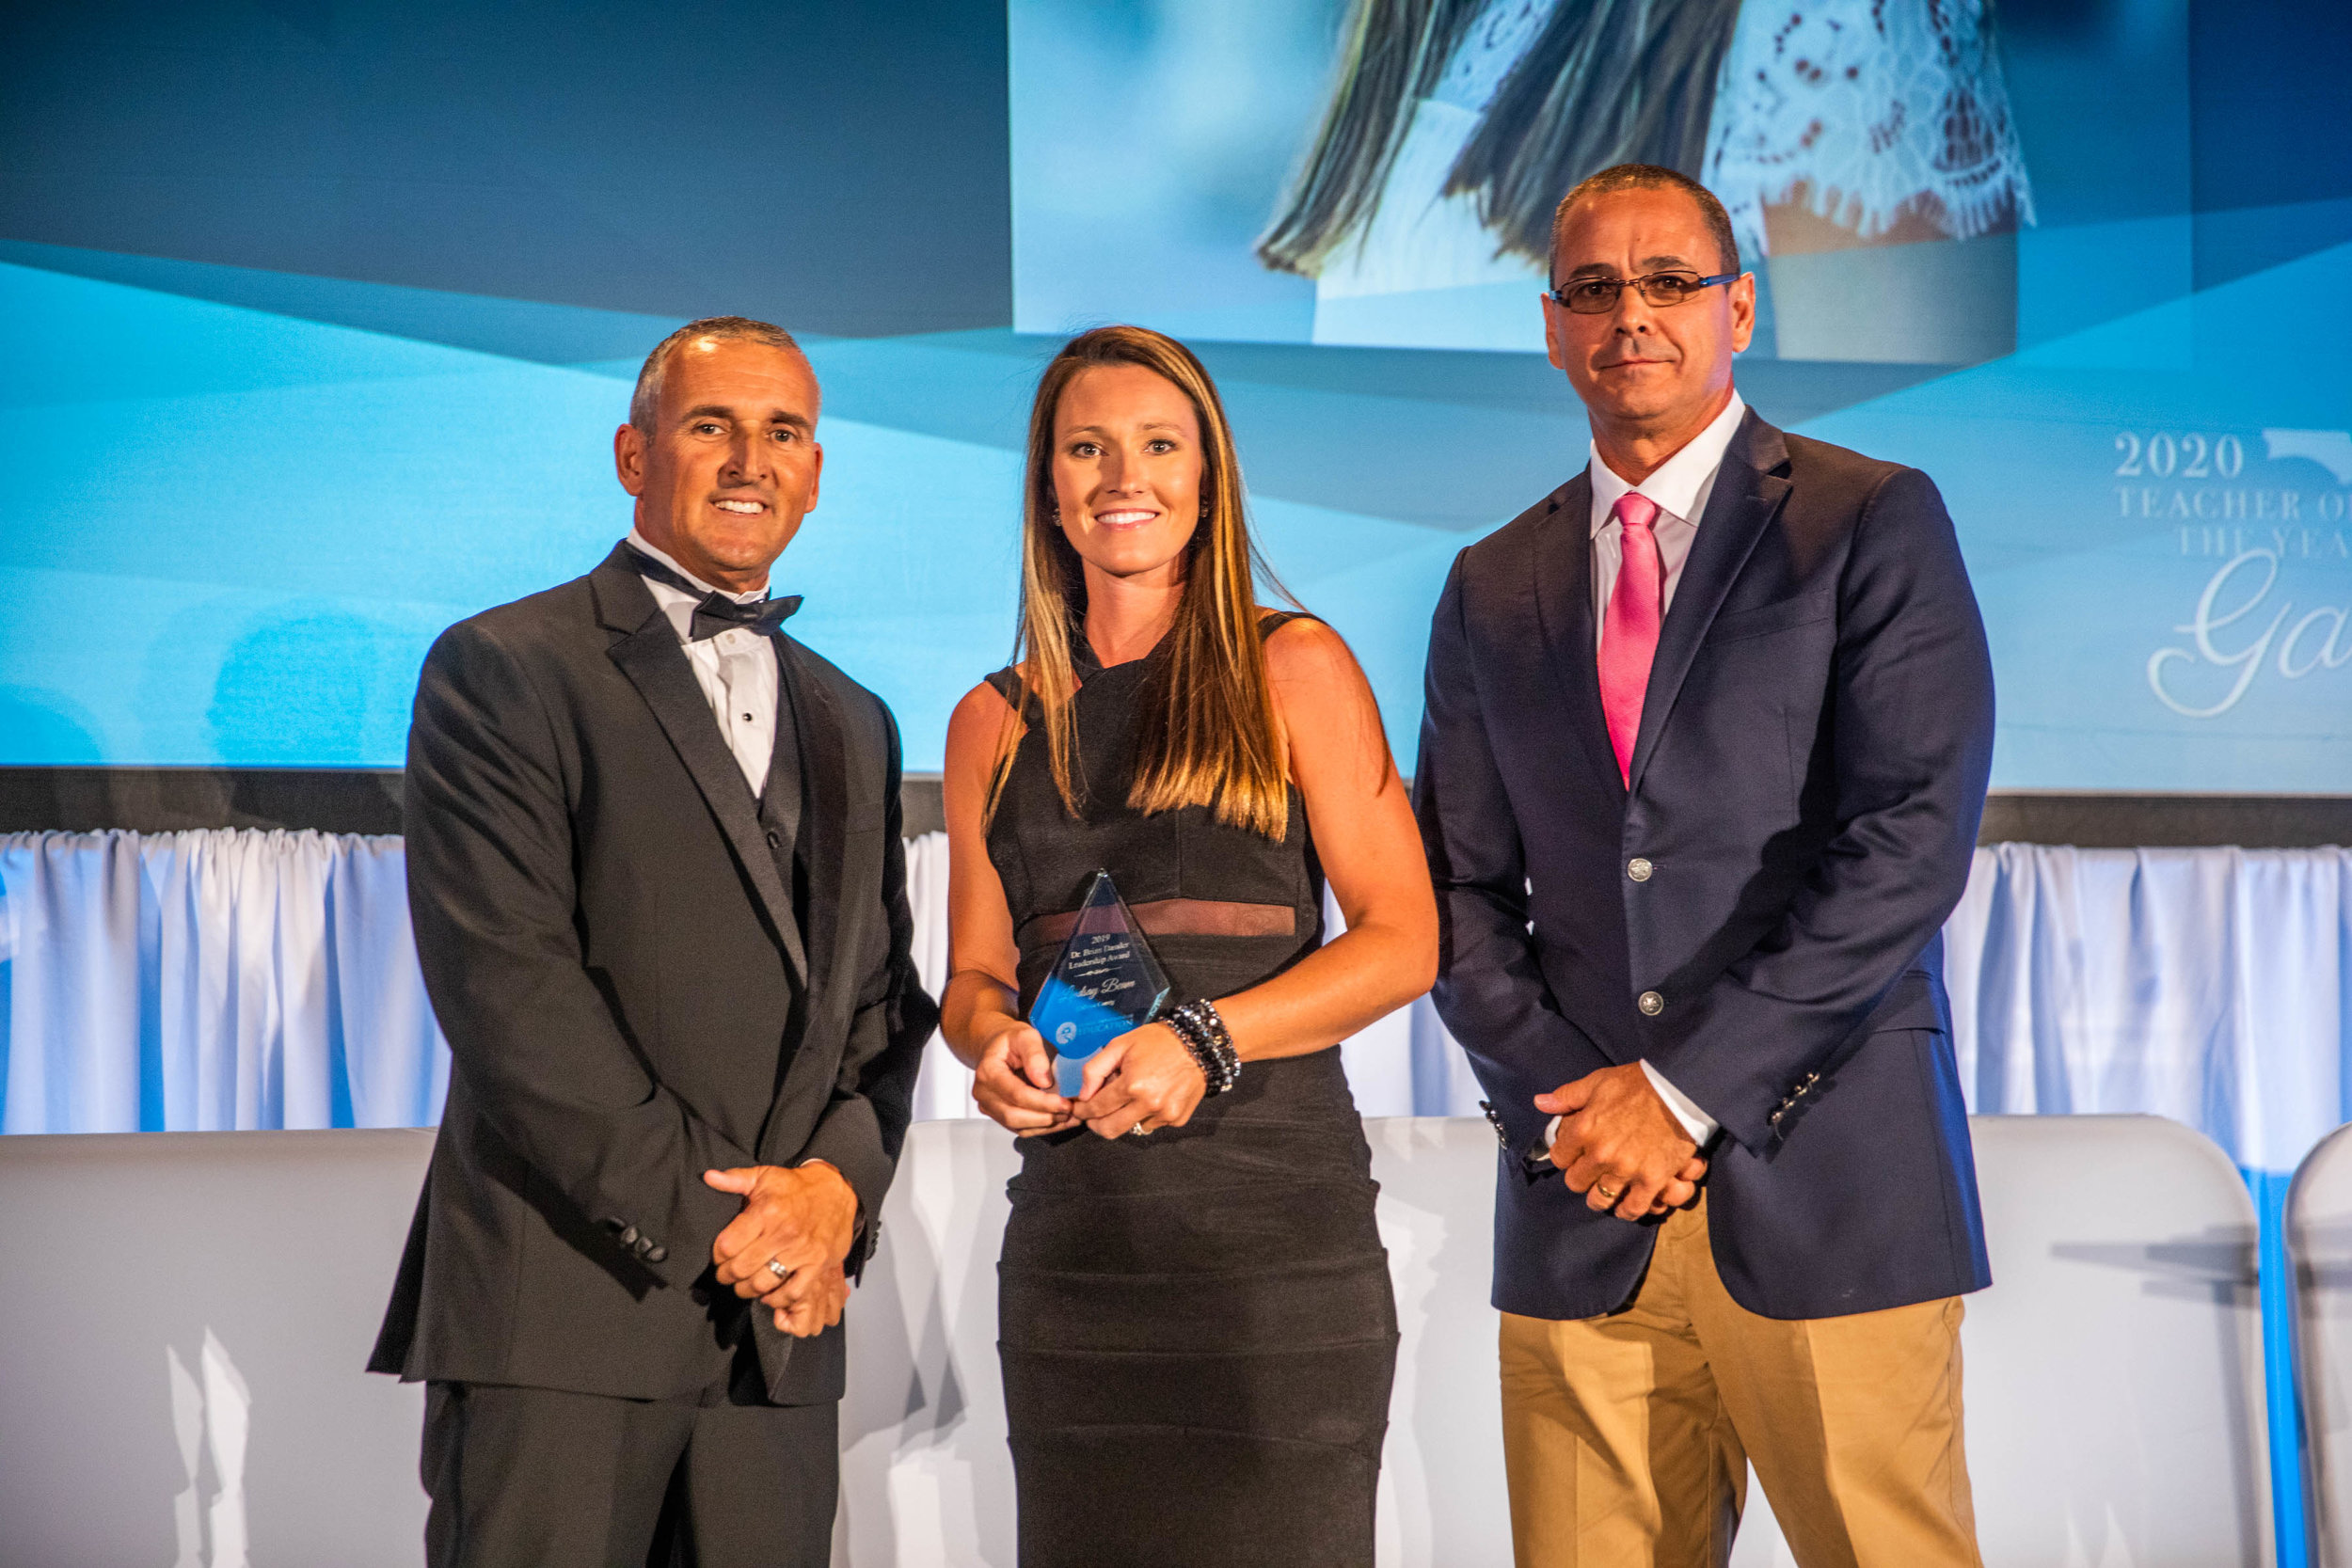 2019 DR. BRIAN DASSLER LEADERSHIP AWARD - LINDSAY BEAM, CALHOUN COUNTYPresented by Andy Tuck, chair of the State Board of Education, and 2017 Recipient Rob Patterson, Pasco County